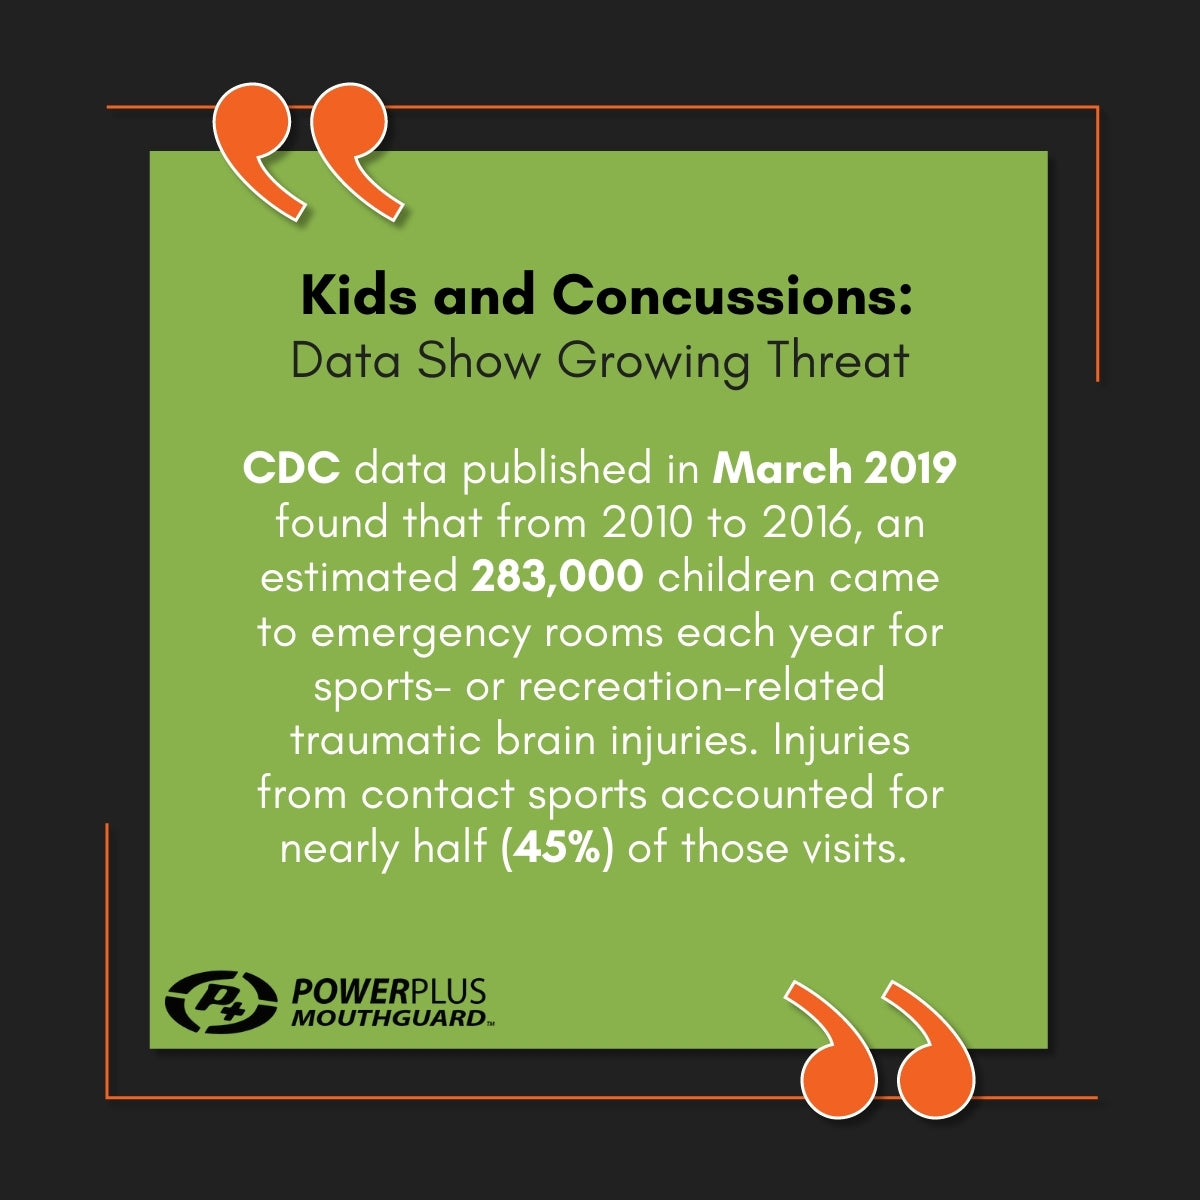 Kids and Concussions: Data Shows Growing Threat